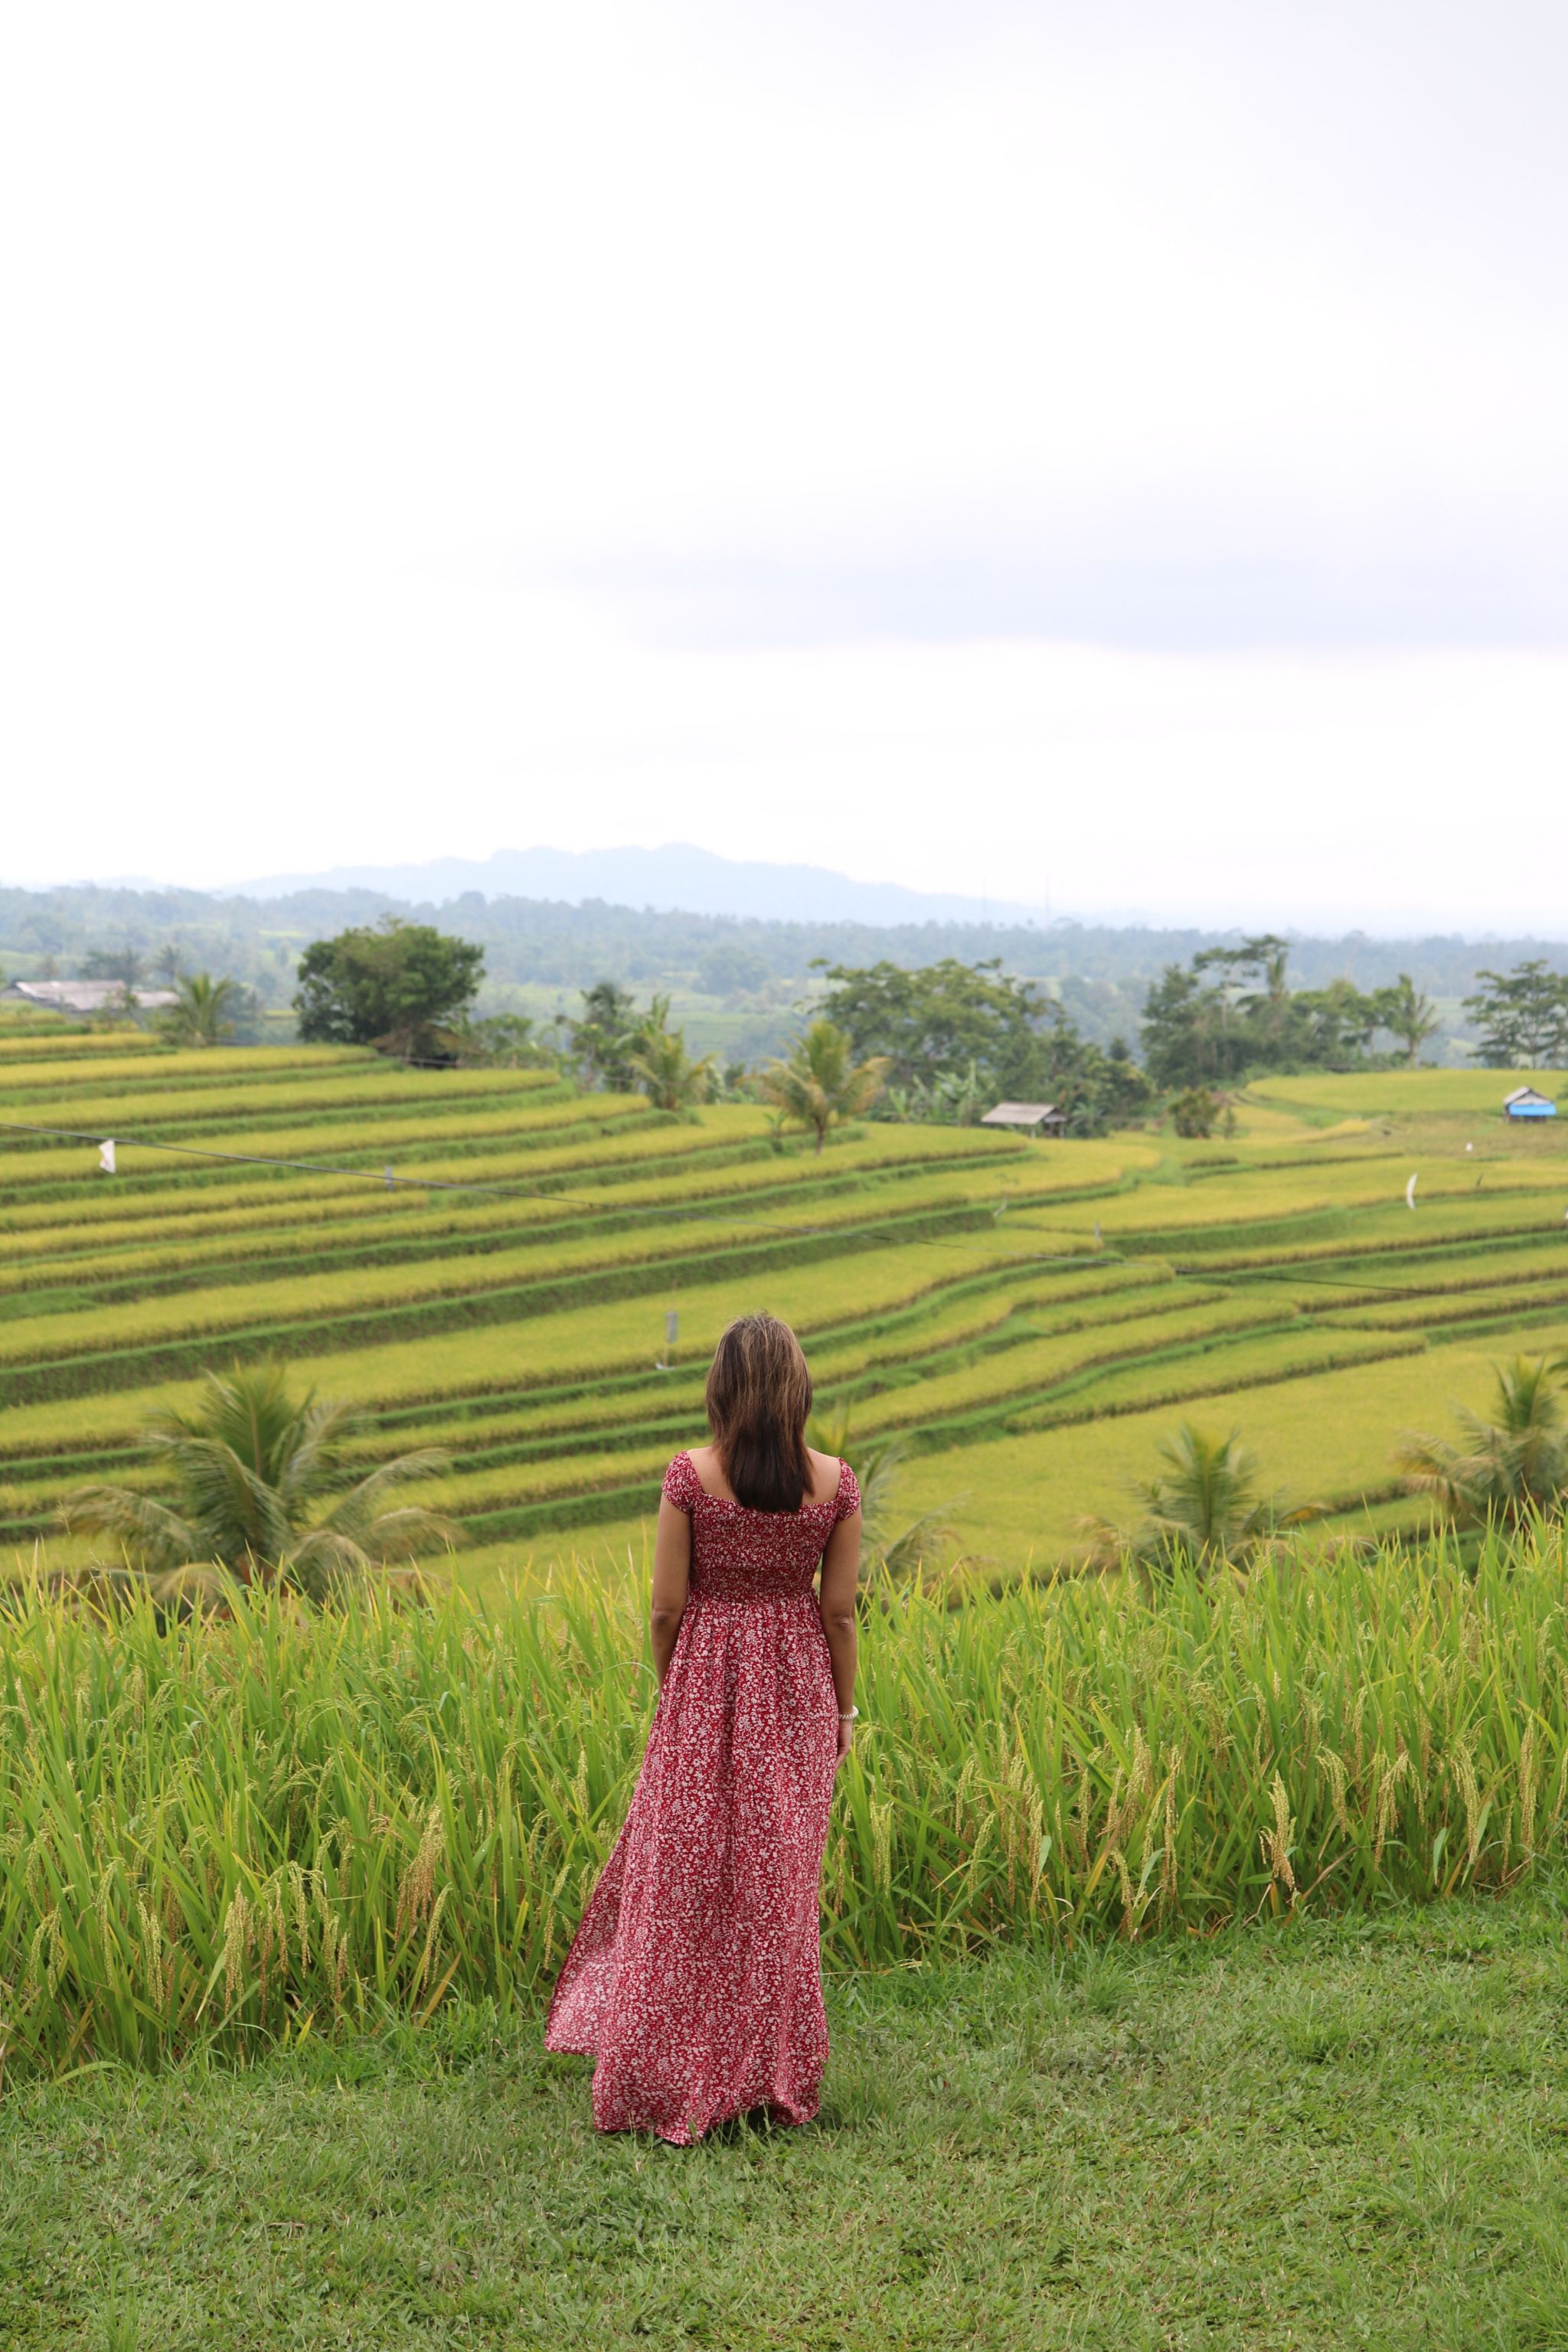 Things to do in Bali Indonesia - Binnys Food amp Travel, hotel review the laguna a luxury collection resort amp spa karibu to binnys food and travel diaries! i set up this blog to share my experiences eating out cooking as well as travelling both in the uk and globally. i love packing my bags and going off on adventures as one of the best things about travelling is the ability to just get lost in it., 54 dos and donts when visiting bali contented traveller these are 54 dos and donts when vi